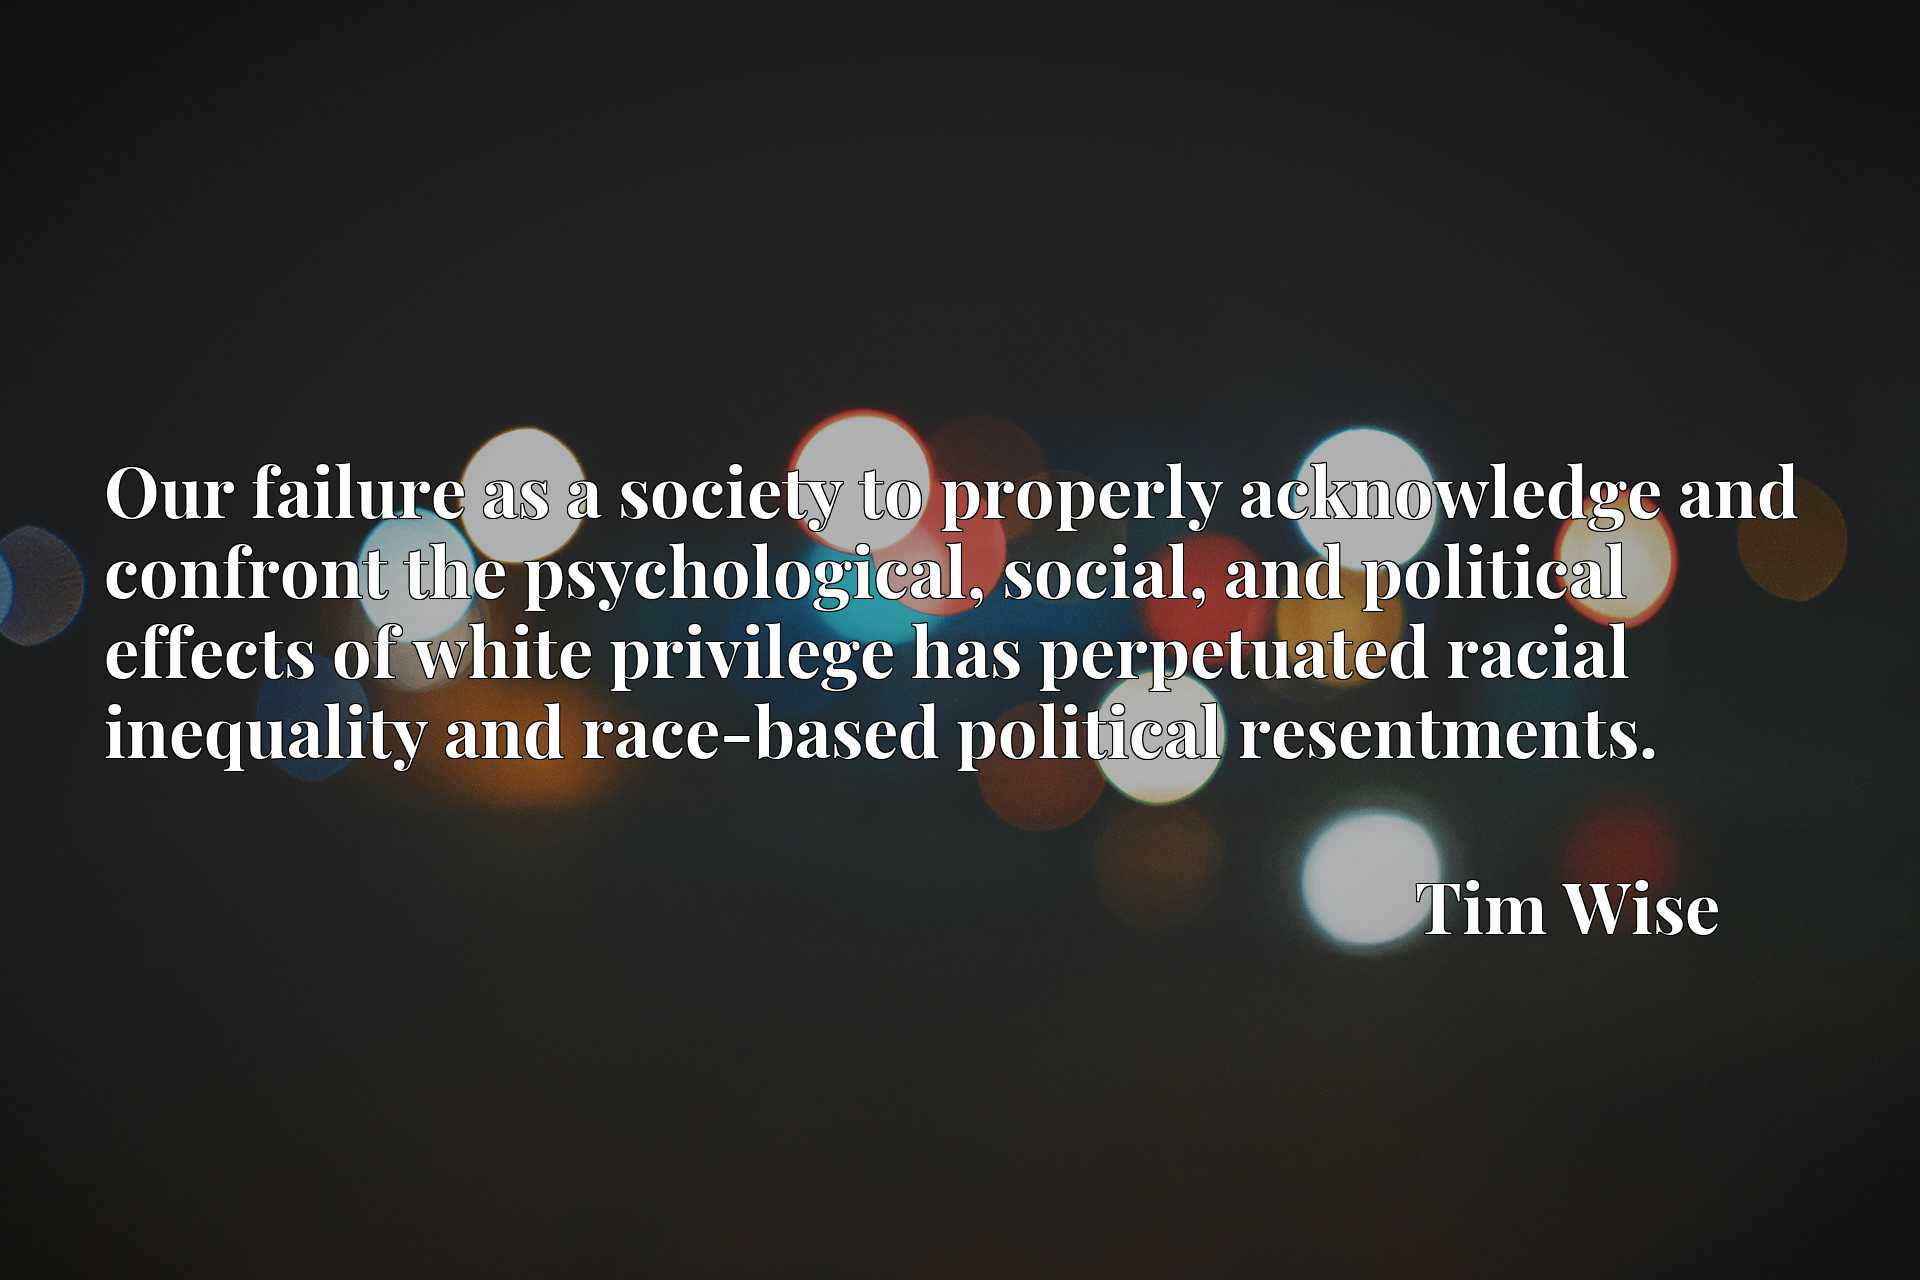 Our failure as a society to properly acknowledge and confront the psychological, social, and political effects of white privilege has perpetuated racial inequality and race-based political resentments.